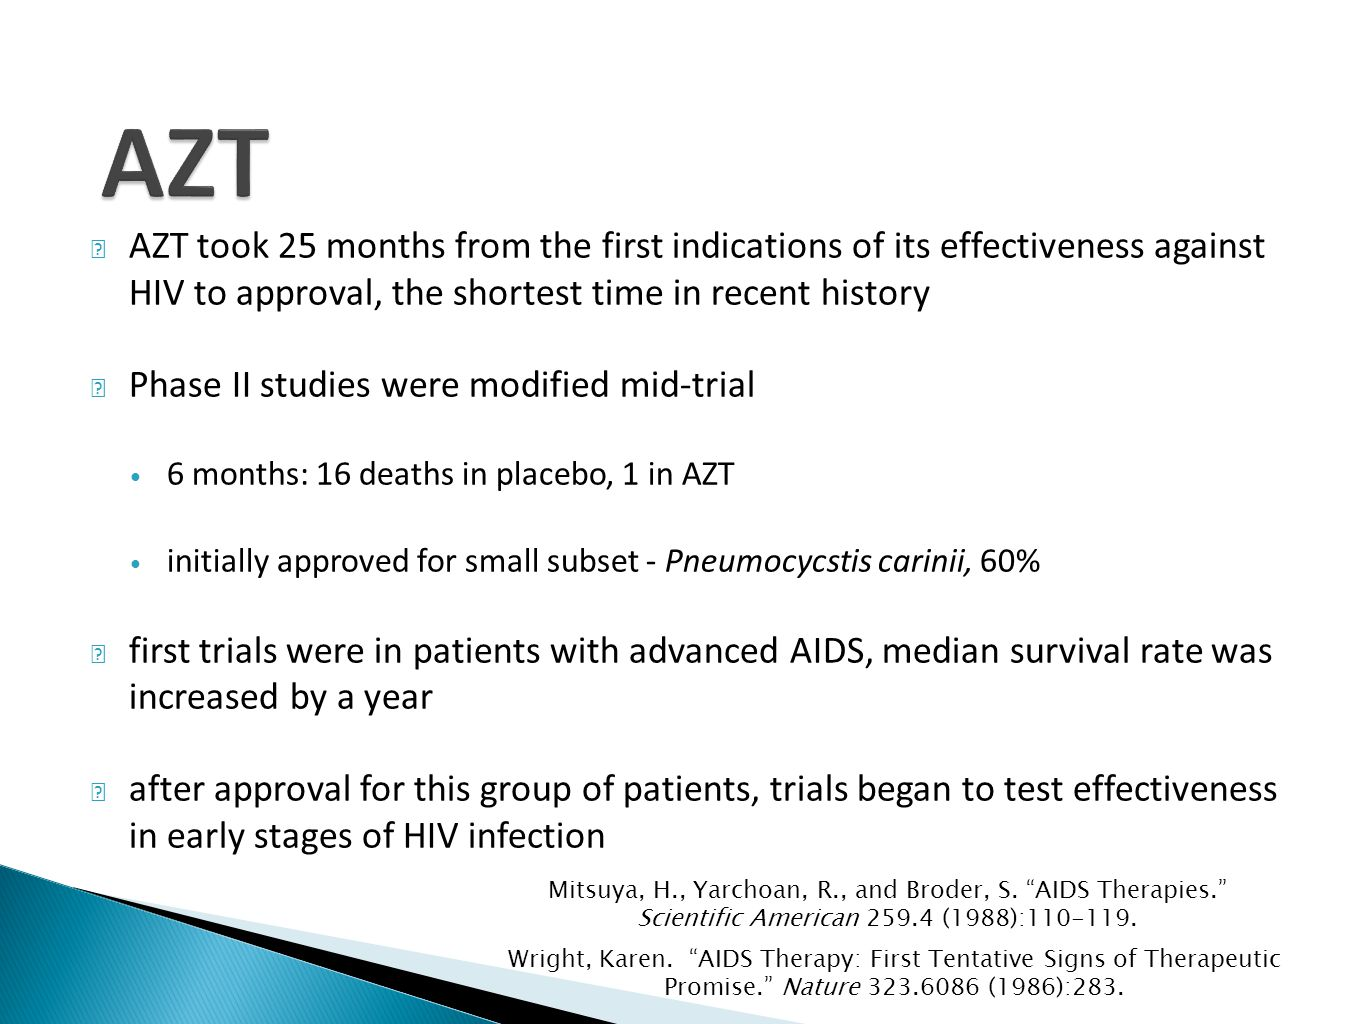 AZT took 25 months from the first indications of its effectiveness against HIV to approval, the shortest time in recent history Phase II studies were modified mid-trial 6 months: 16 deaths in placebo, 1 in AZT initially approved for small subset - Pneumocycstis carinii, 60% first trials were in patients with advanced AIDS, median survival rate was increased by a year after approval for this group of patients, trials began to test effectiveness in early stages of HIV infection Wright, Karen.